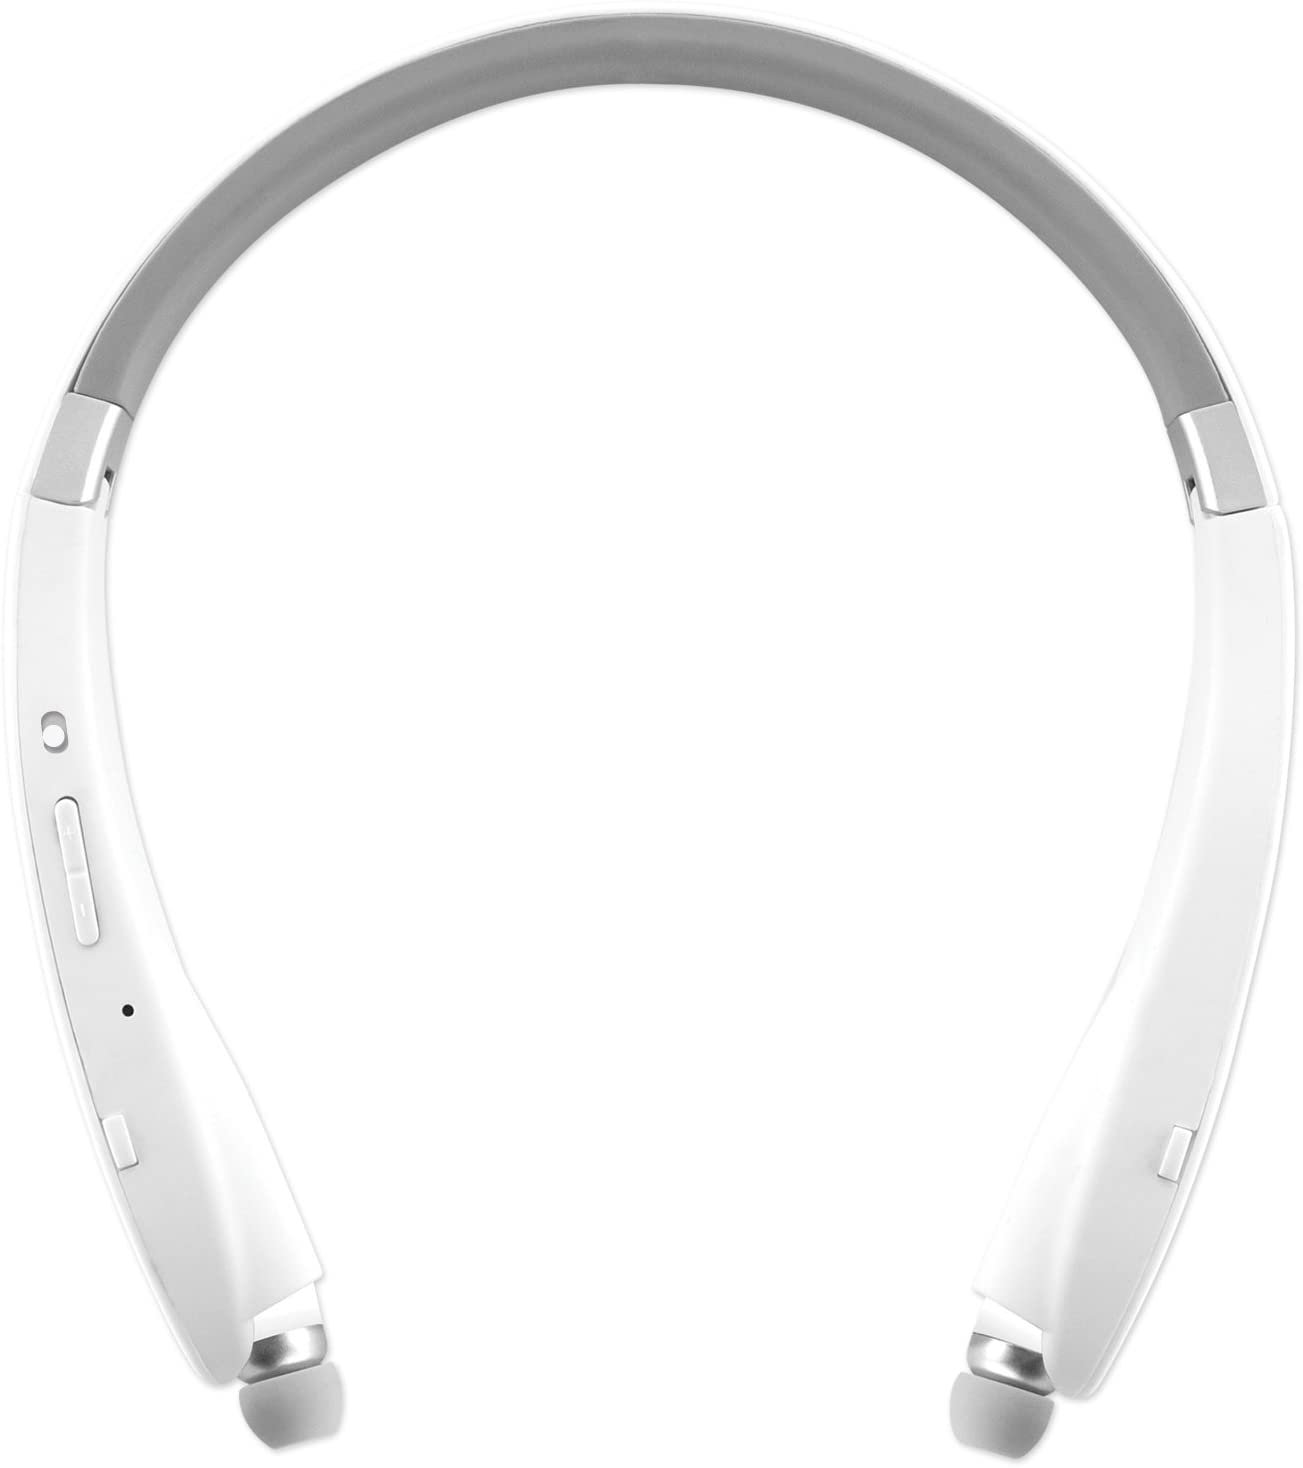 IPro Series: Bluetooth On The Neck Earbuds with Vibrating Headband - White - by Sentry Industries!